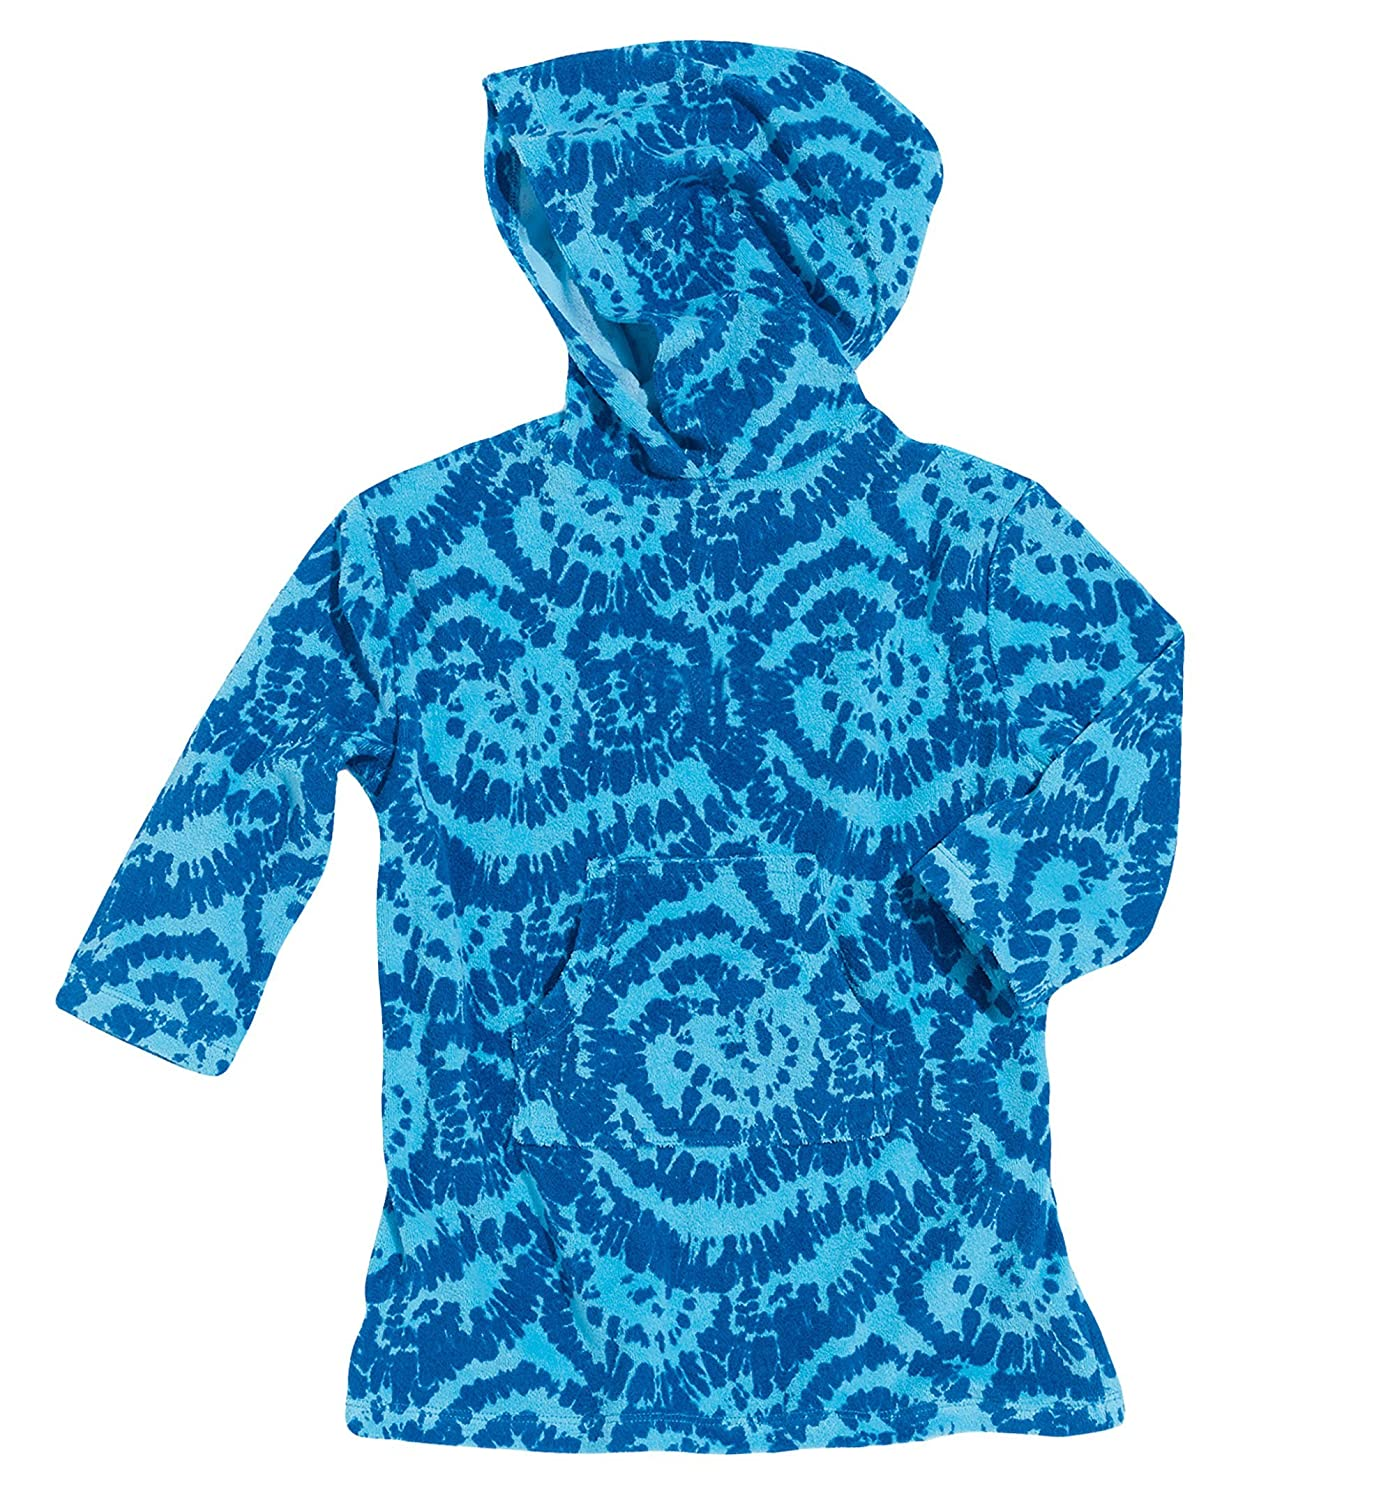 Sun Smarties Terry Boys Long Sleeve Hoodie Shirt Swim or Beach Cover-Up UPF50+ 6890316